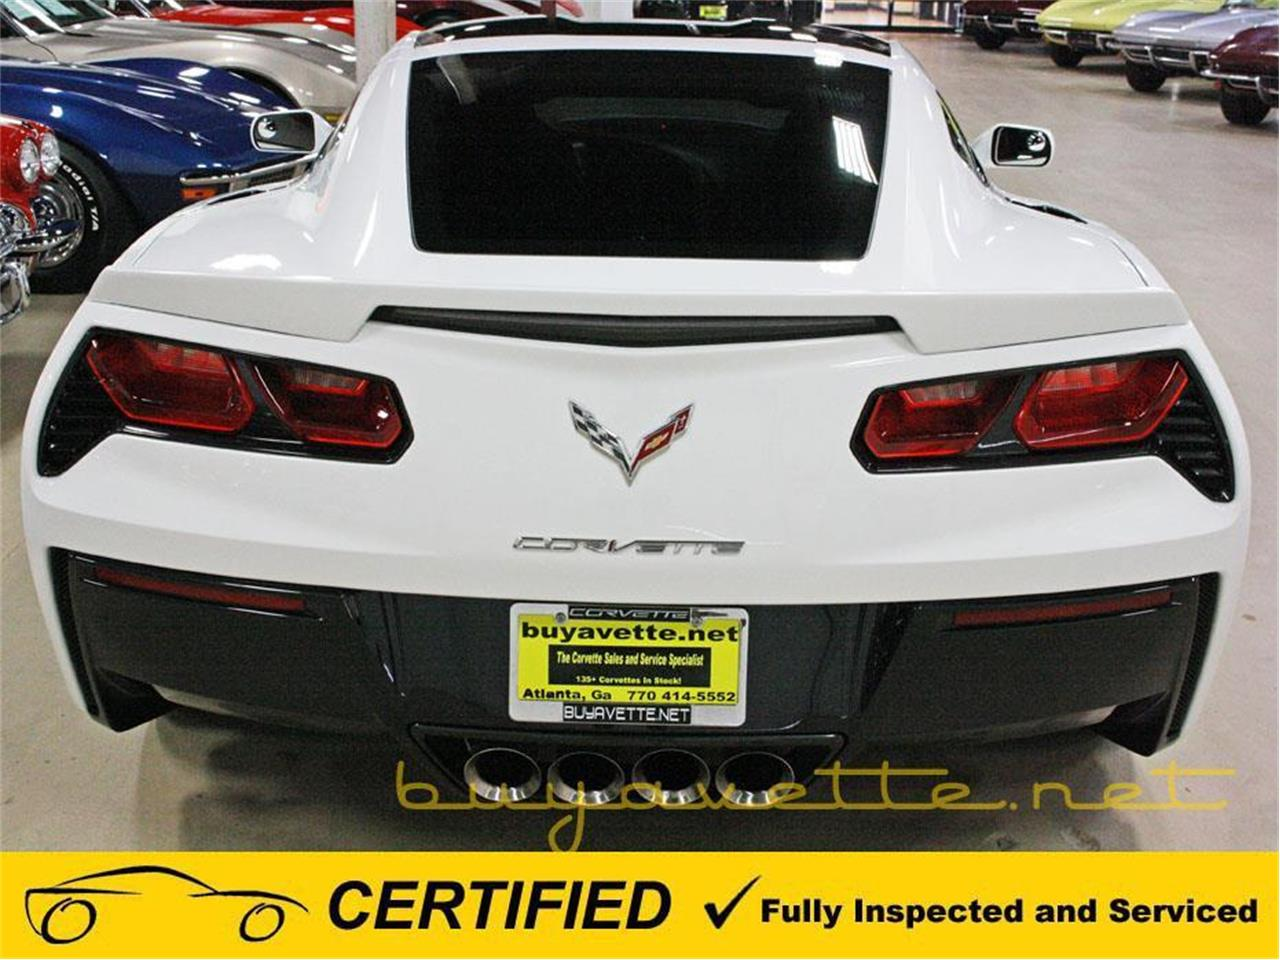 Large Picture of 2015 Corvette - $47,999.00 Offered by Buyavette - LE80